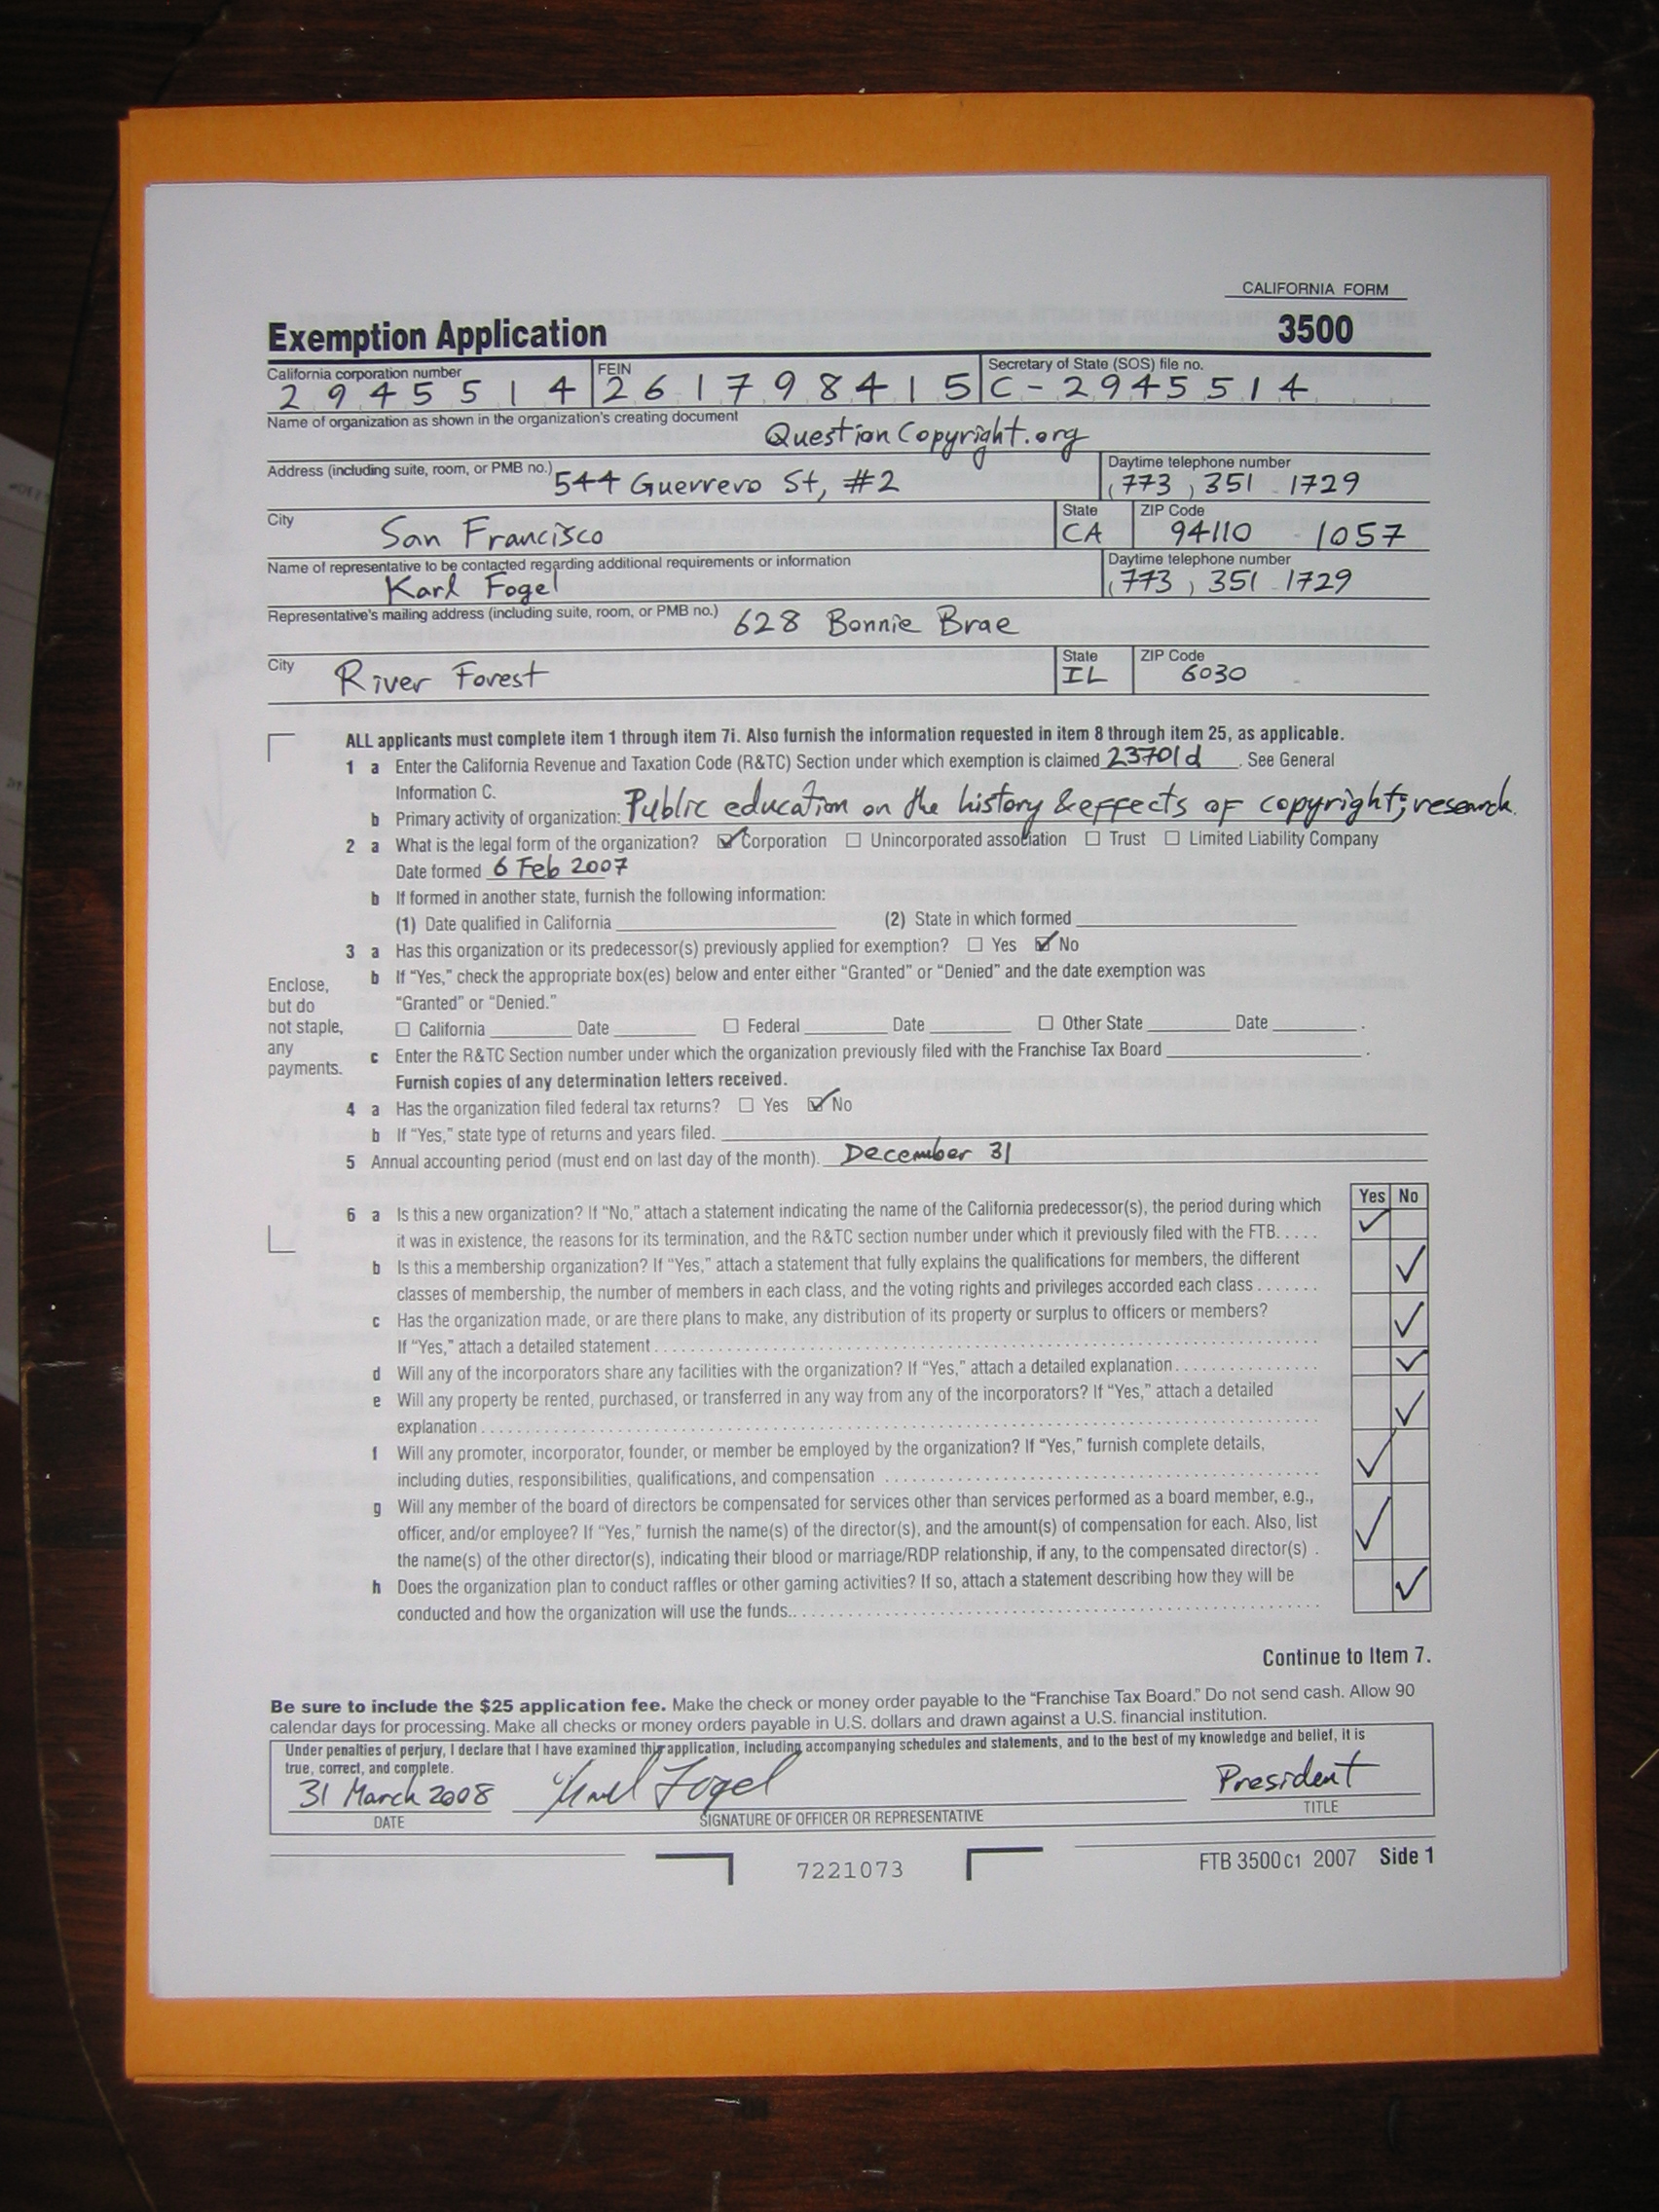 Corporate documents tax returns etc questioncopyright form 3500 checklist 1betcityfo Image collections